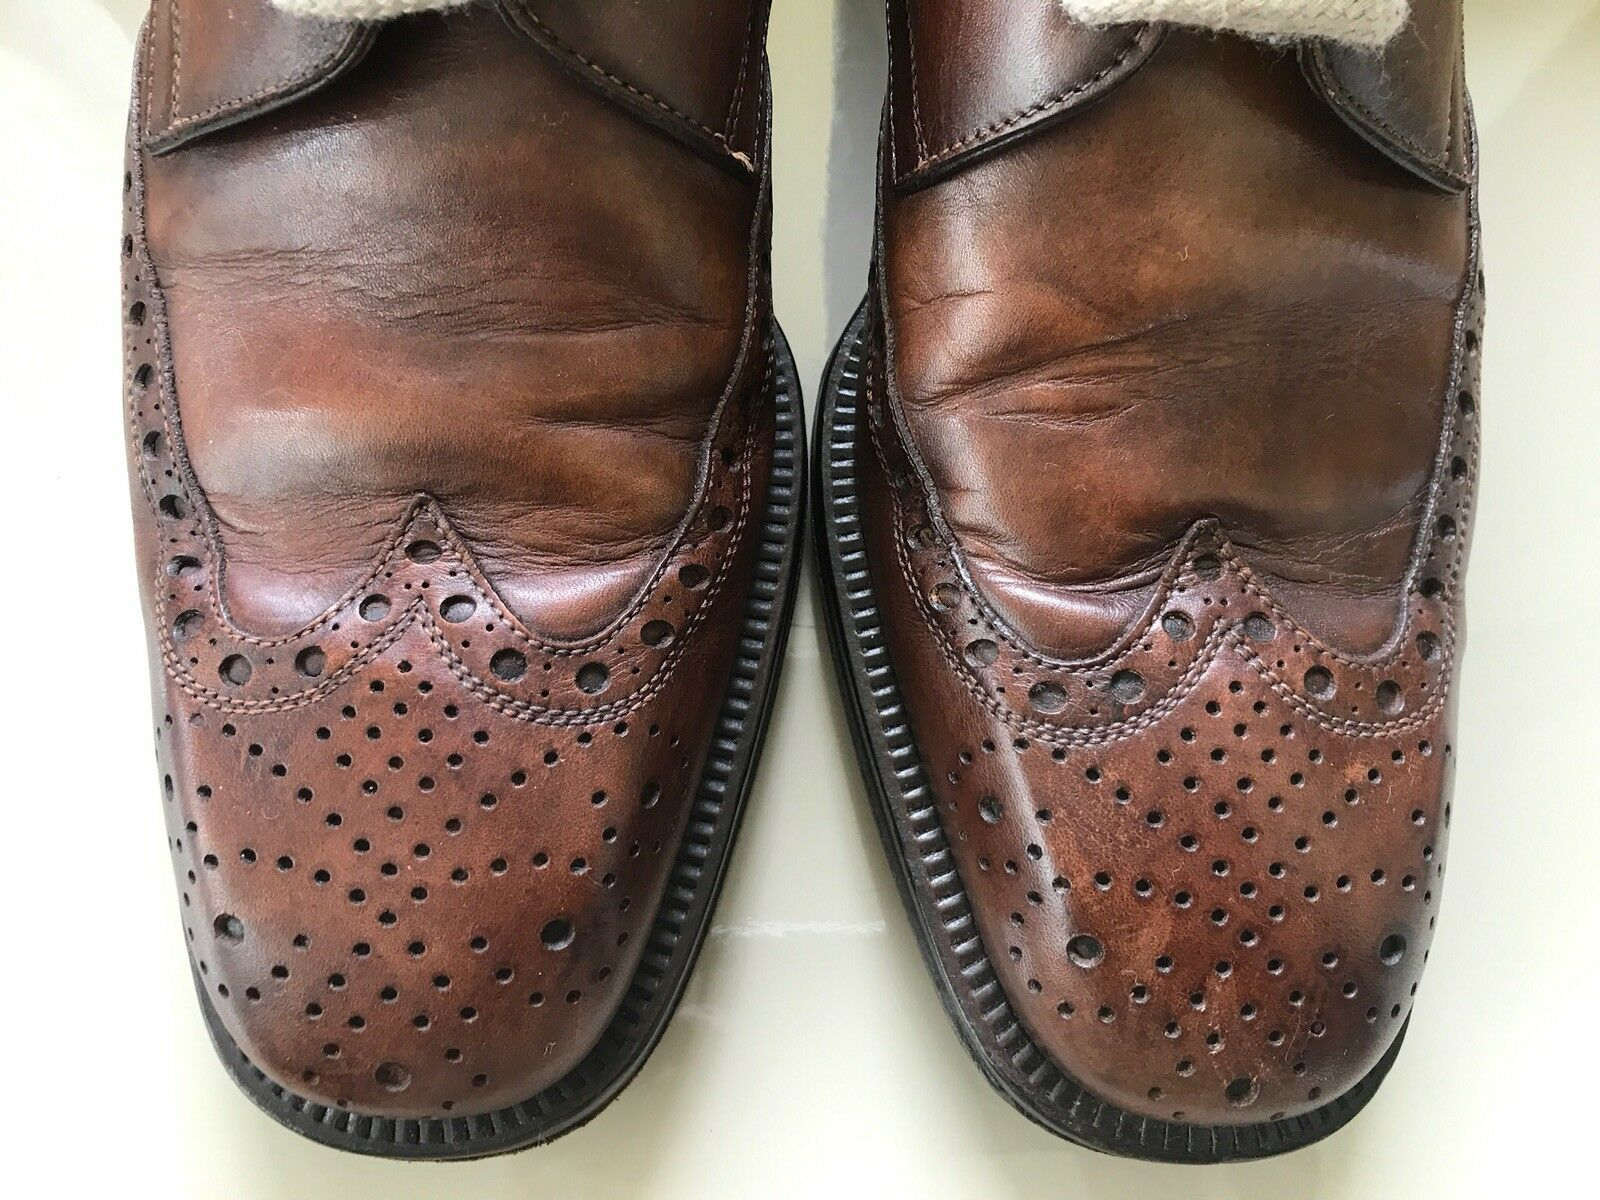 PAKERSON PAKERSON PAKERSON HAND MADE IN ITALY SCARPA herren CLASSICA IN PELLE braun MIS. 41,5 121a9c